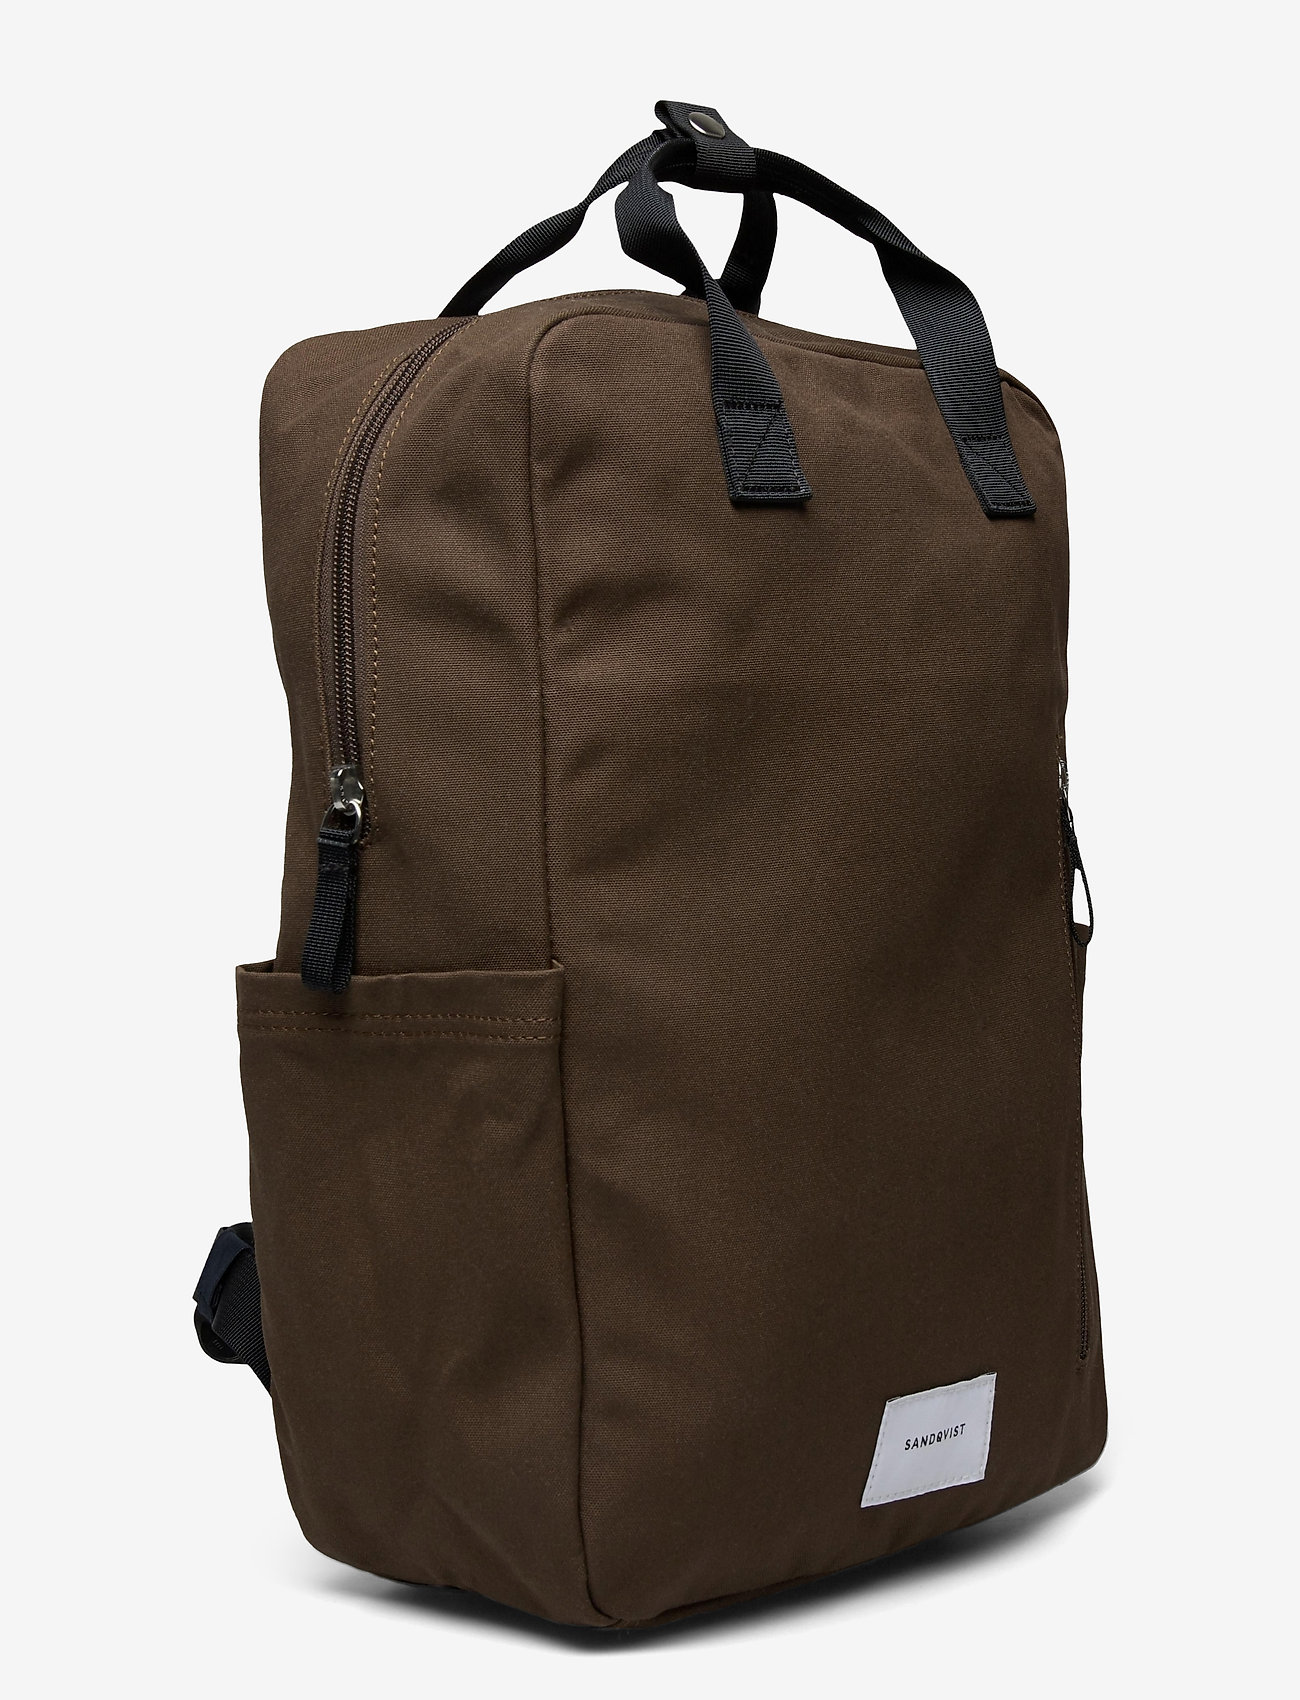 SANDQVIST - KNUT - sacs a dos - olive with navy webbing - 3